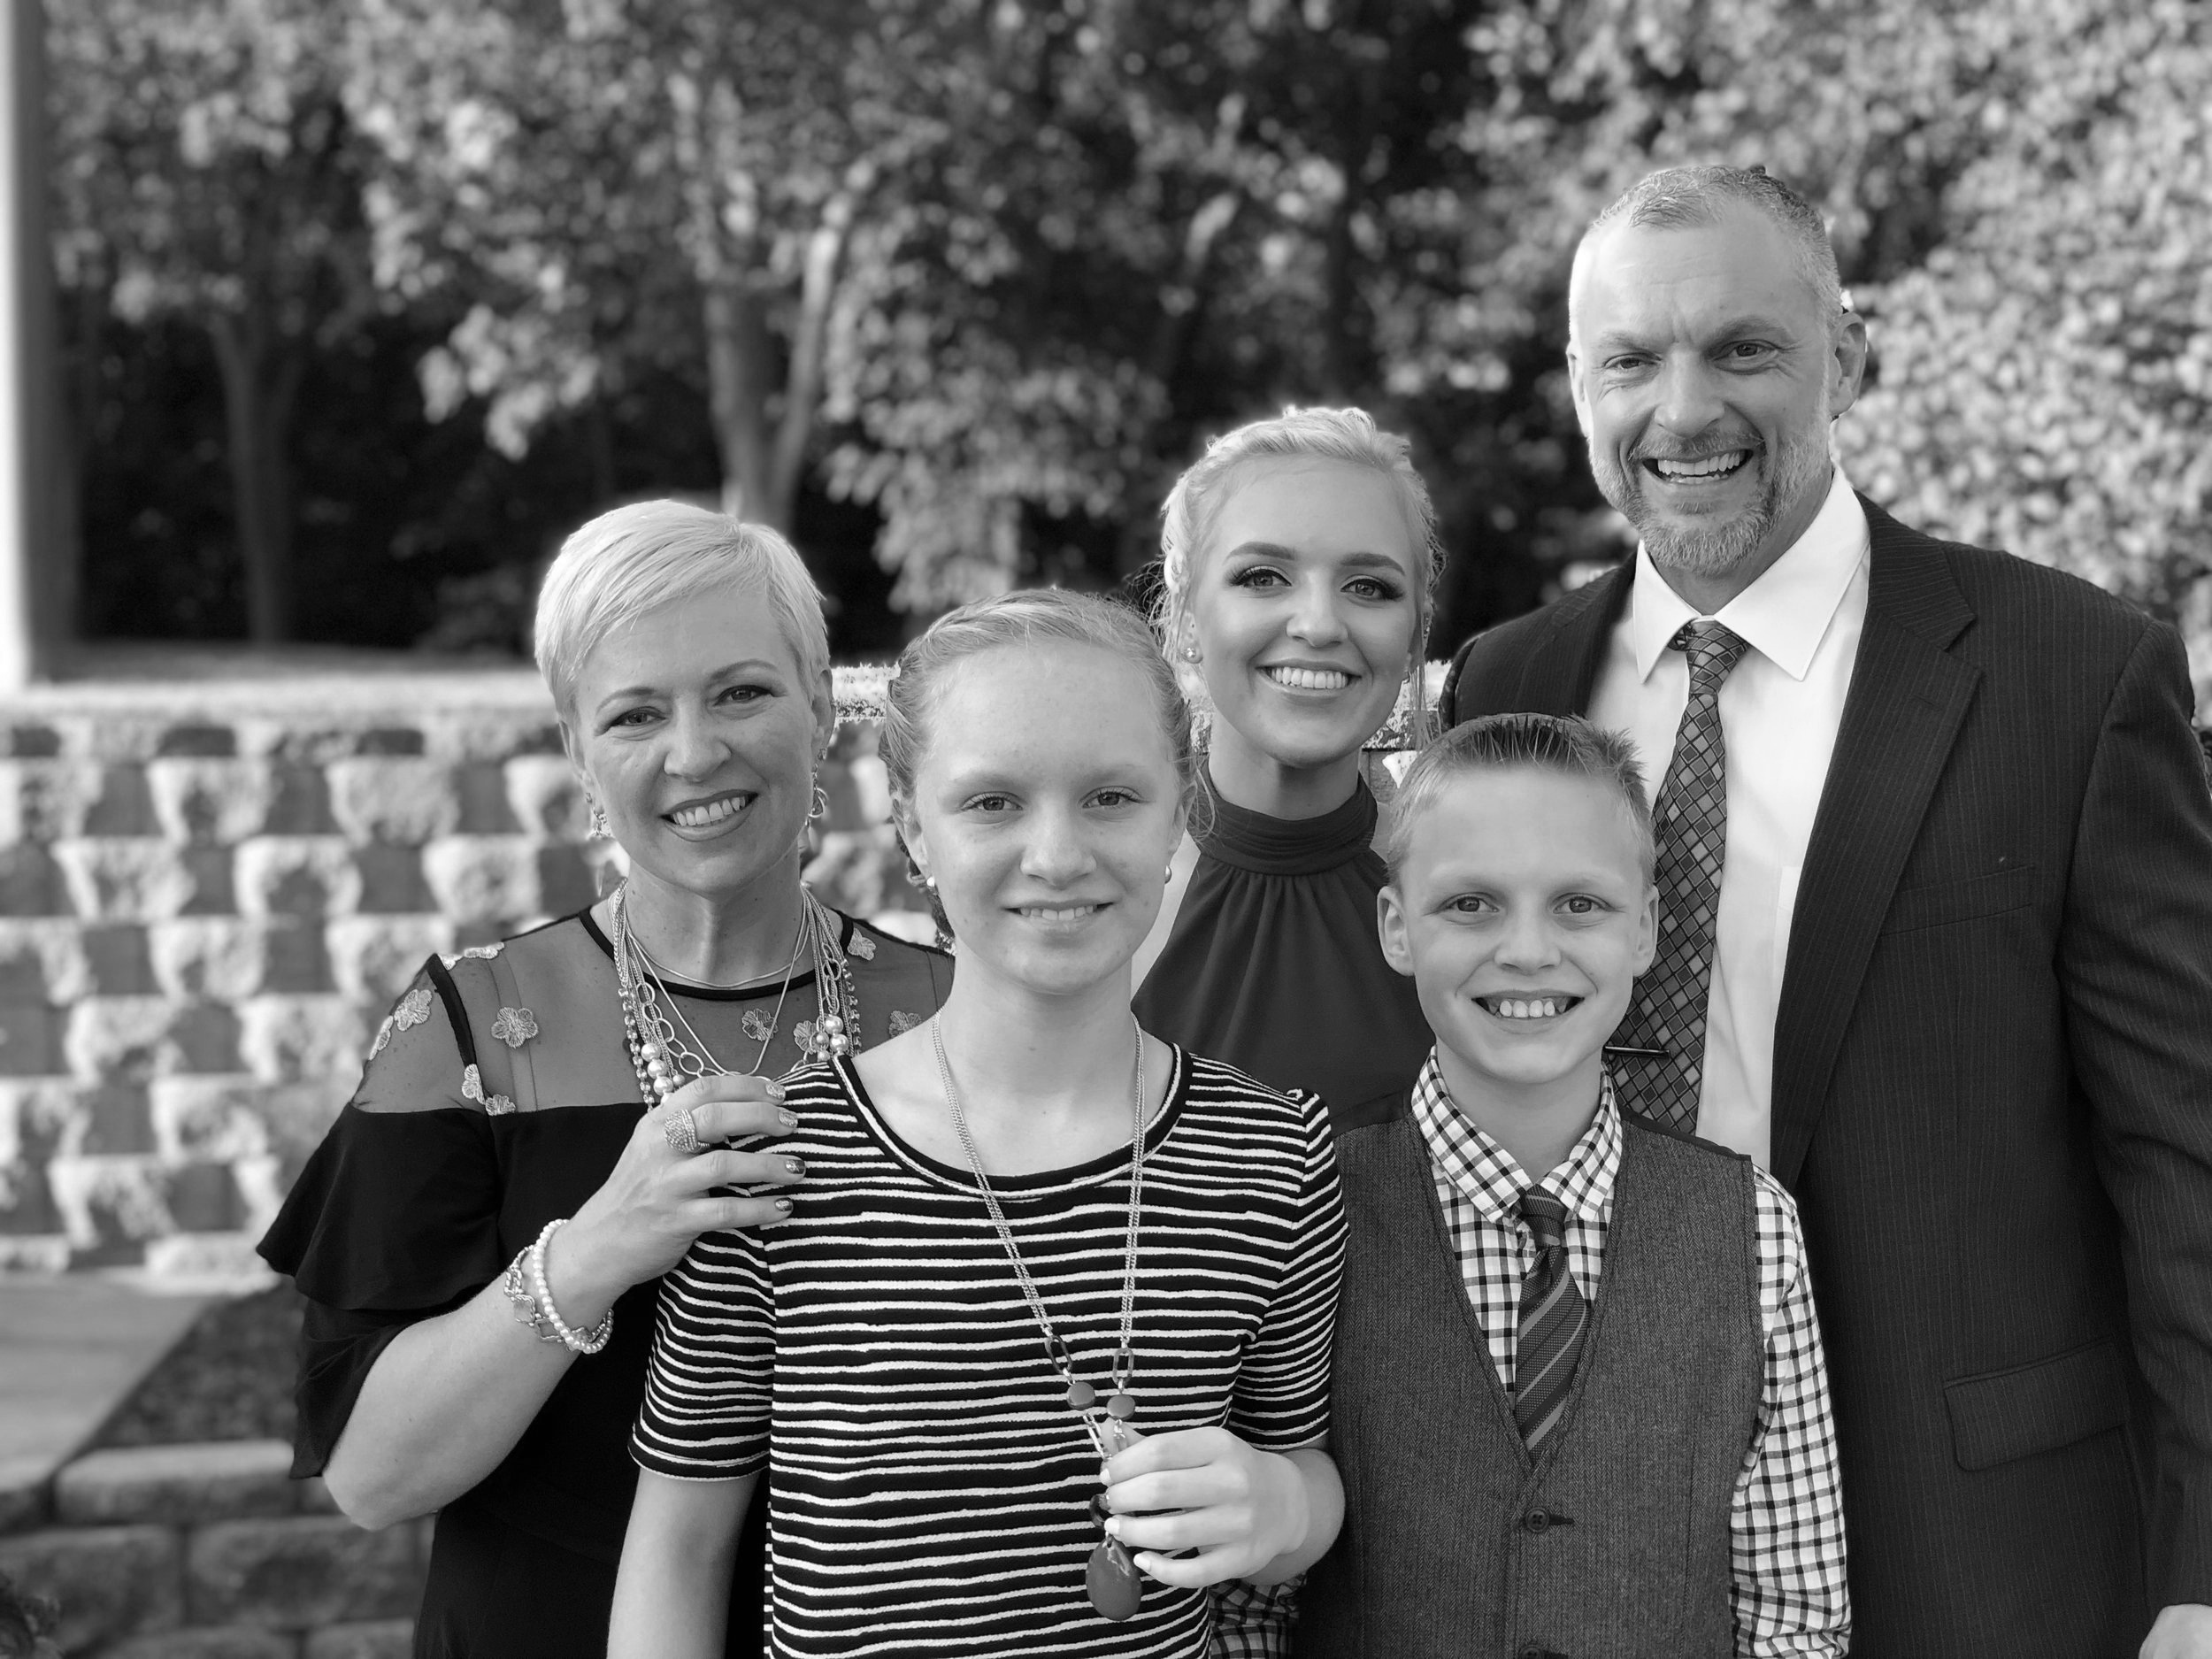 Family Man - Married to wife, Glyn Ann for 27 years.Father of 3 beautiful children.